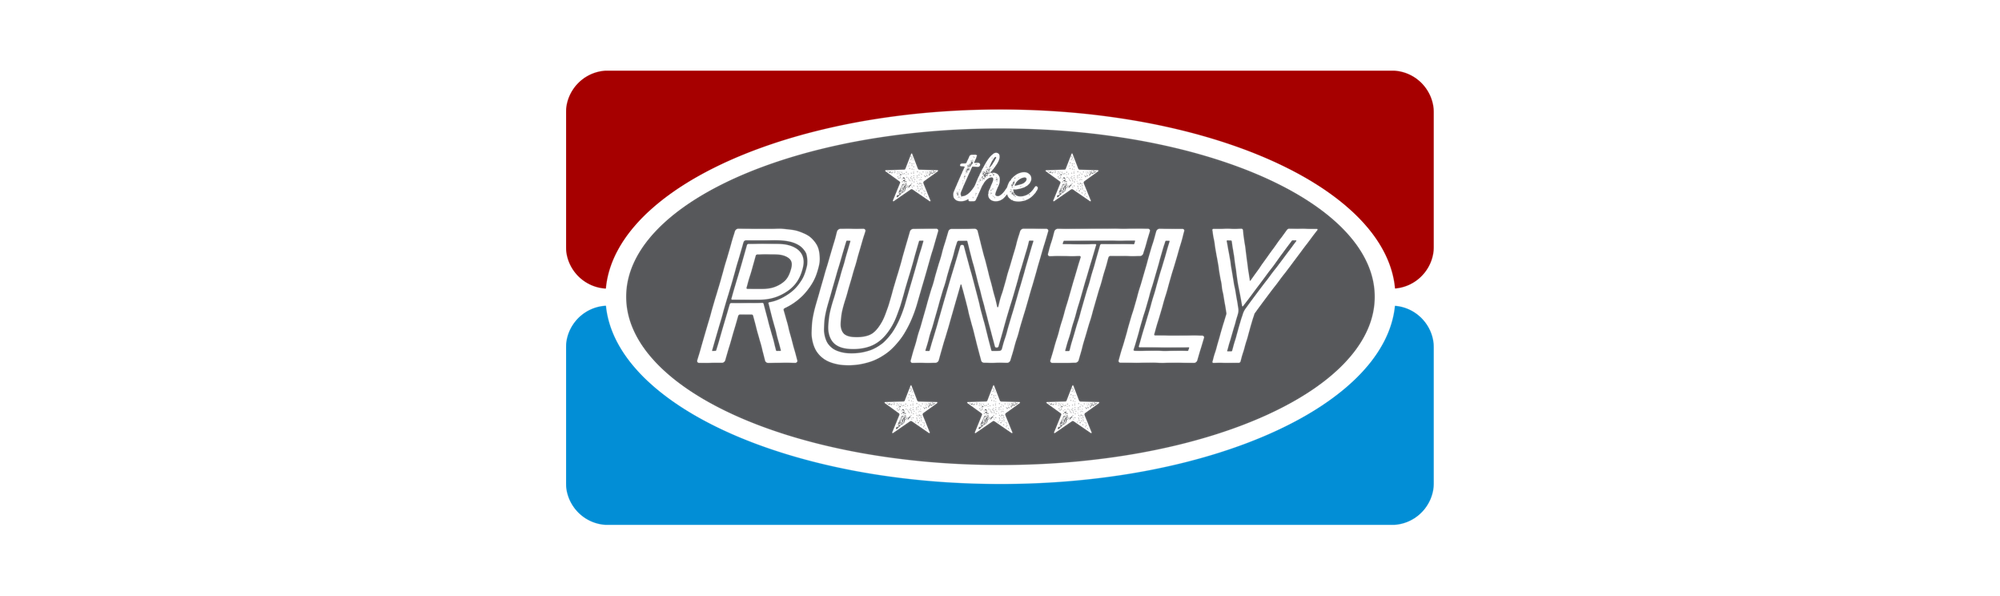 The Runtly - Finch Knife Co